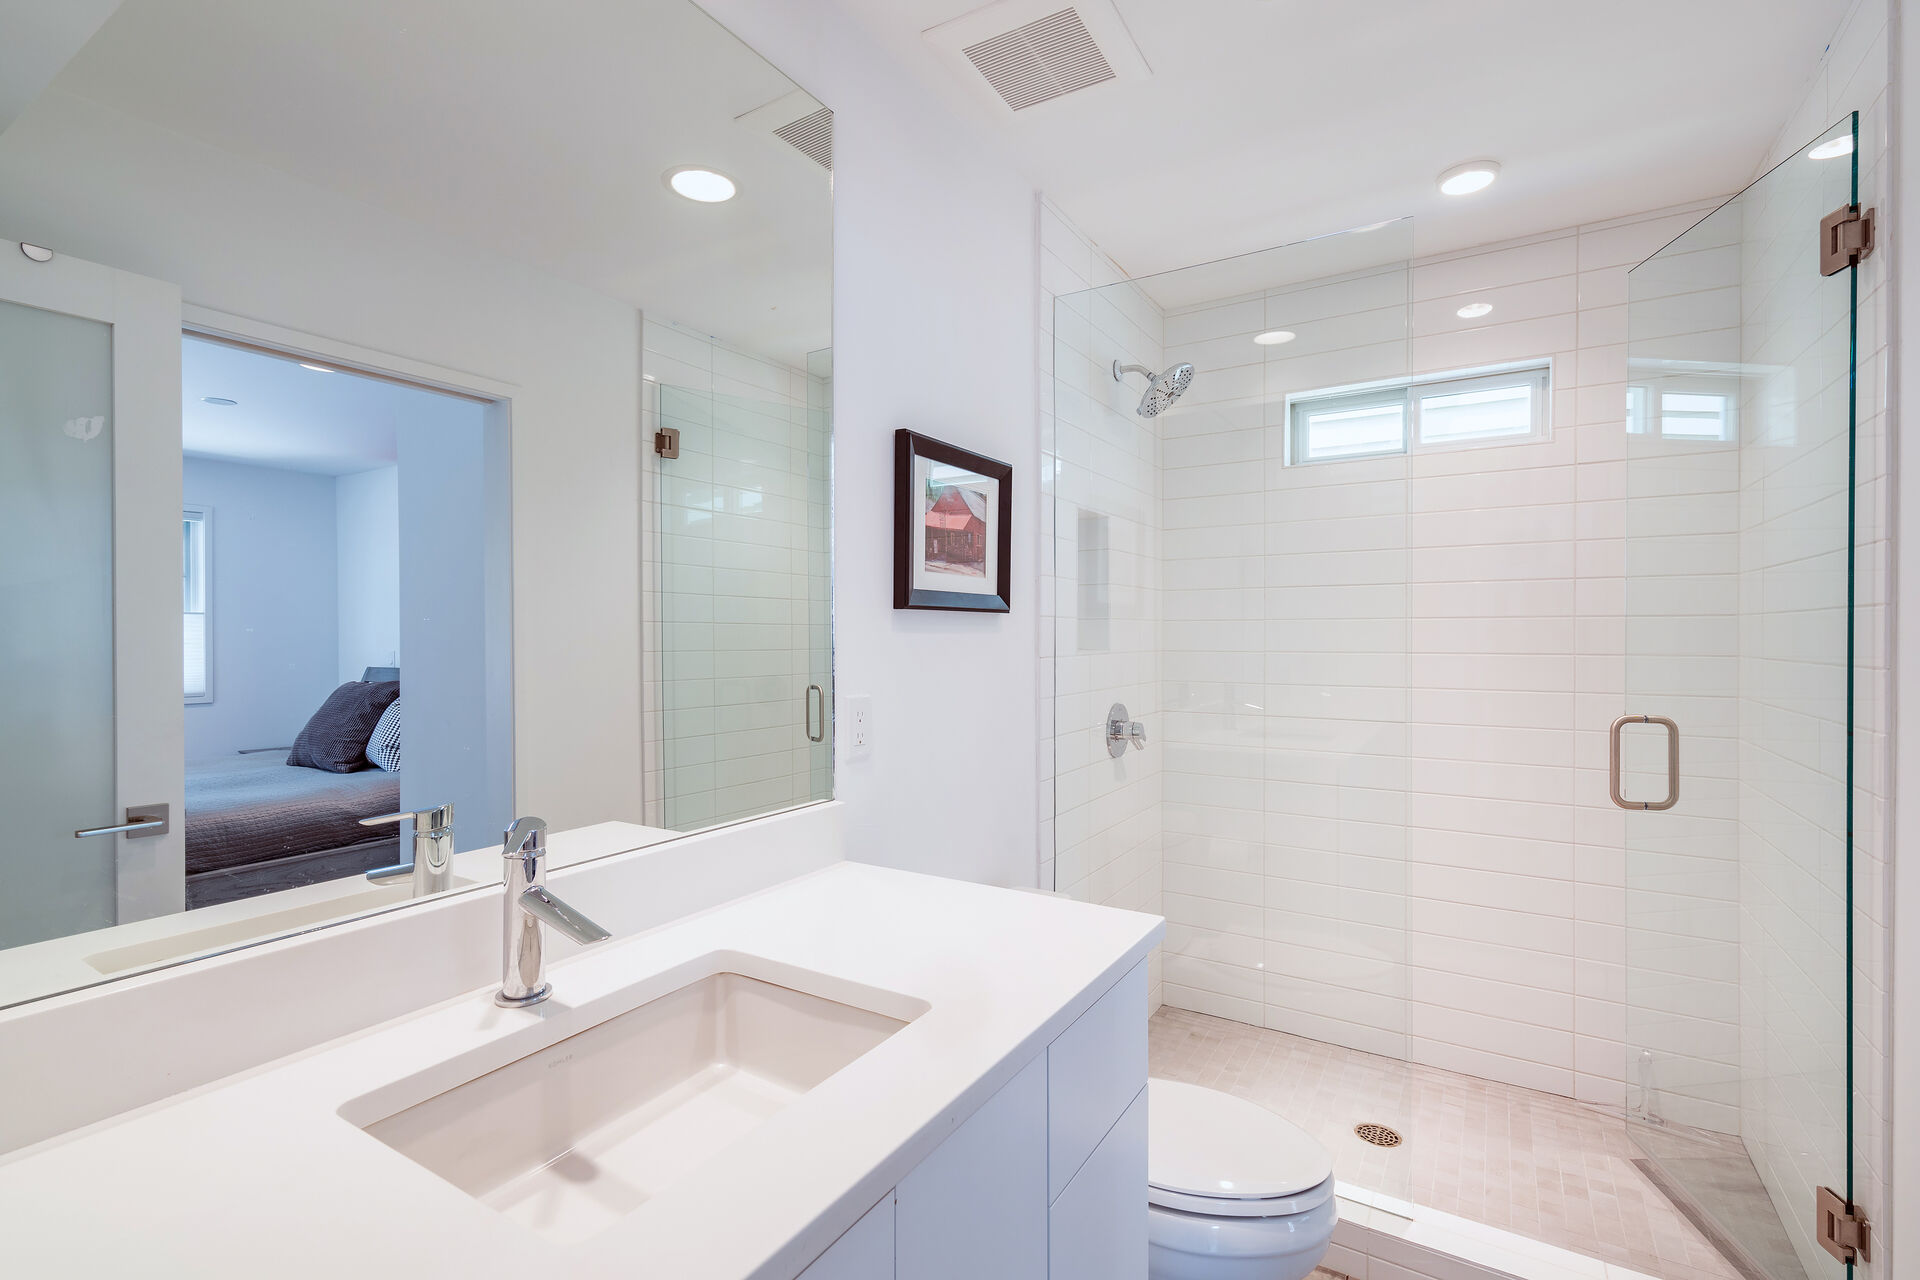 Full Bathroom with Vanity and Large Walk-in Shower at Vacation Home in Telluride